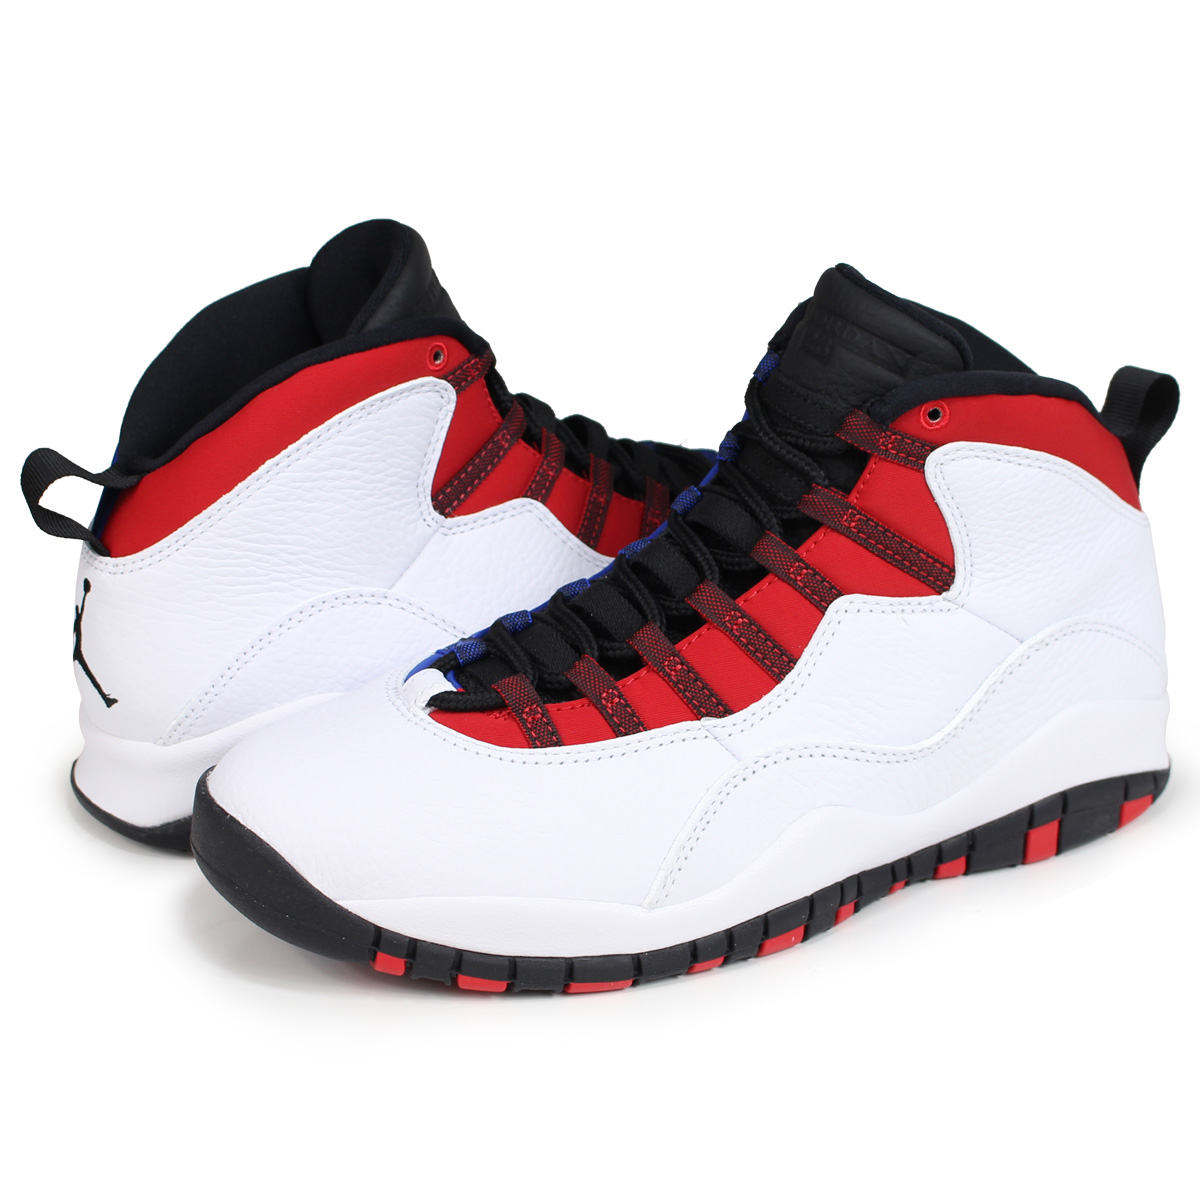 359a6ff0427d6b NIKE AIR JORDAN 10 RETRO RUSSELL WESTBROOK Nike Air Jordan 10 nostalgic  sneakers men 310